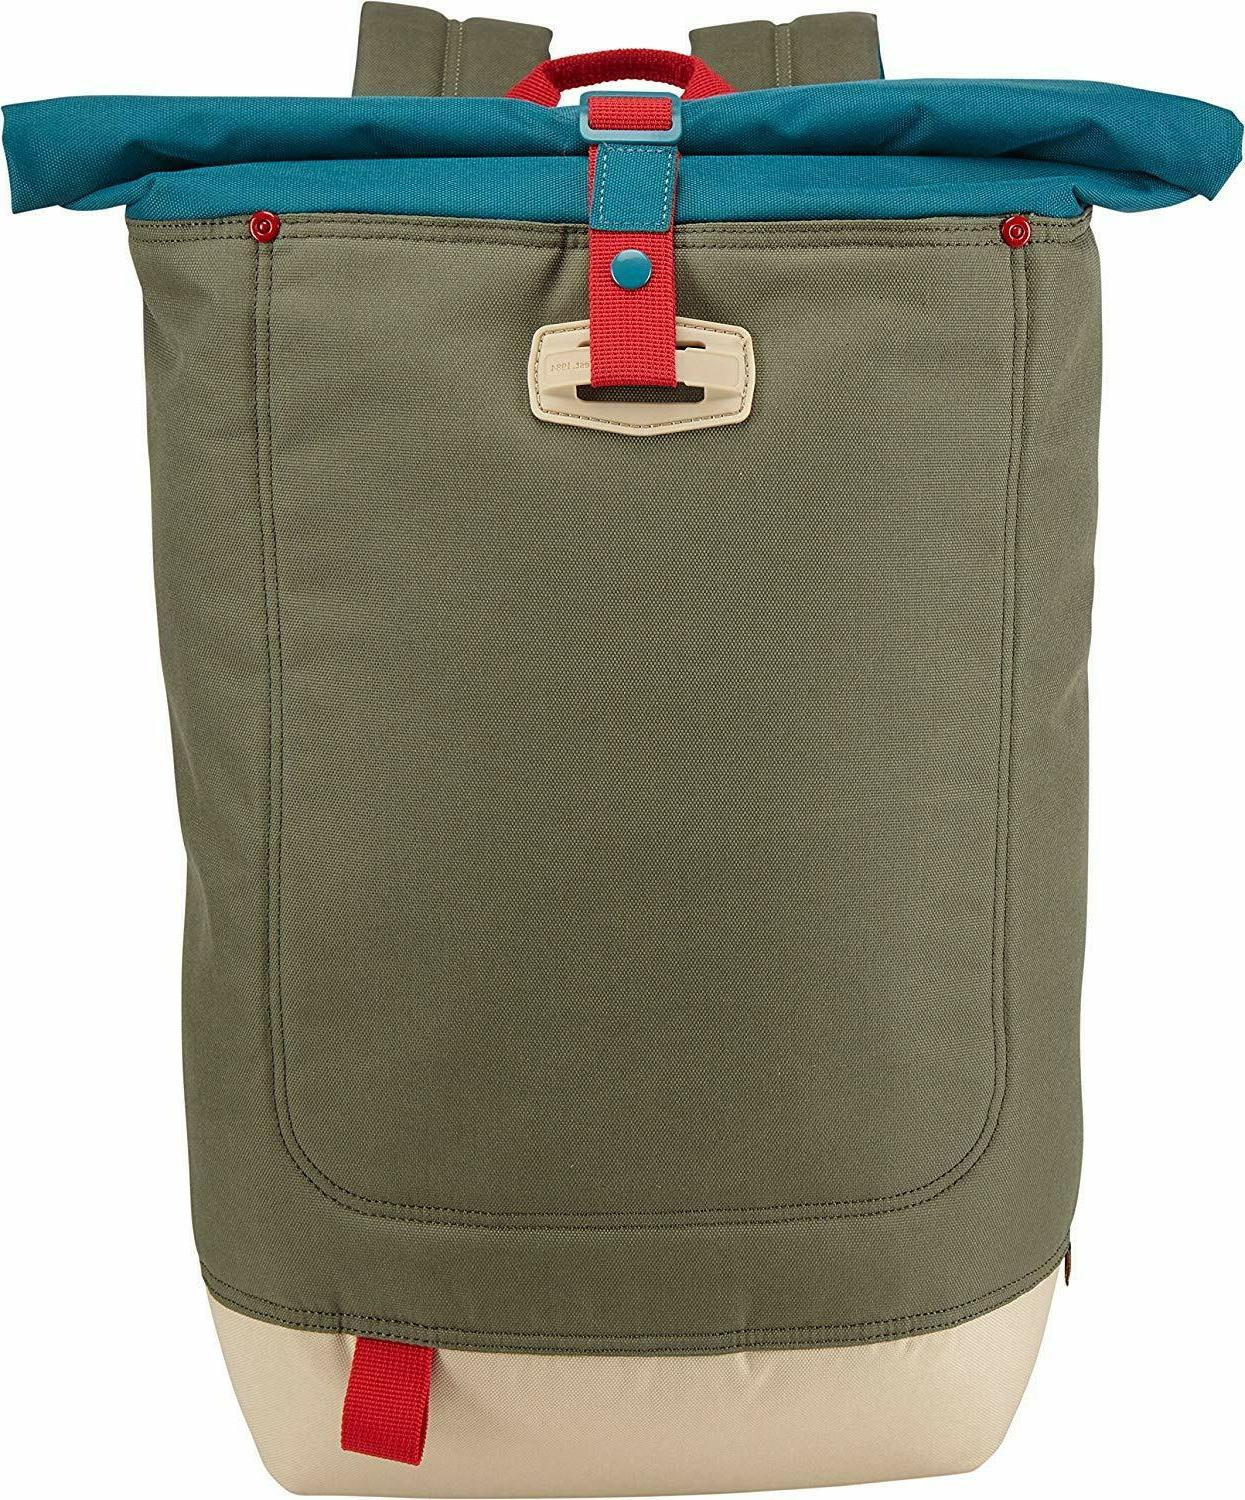 larimer rolltop backpack with slip pocket